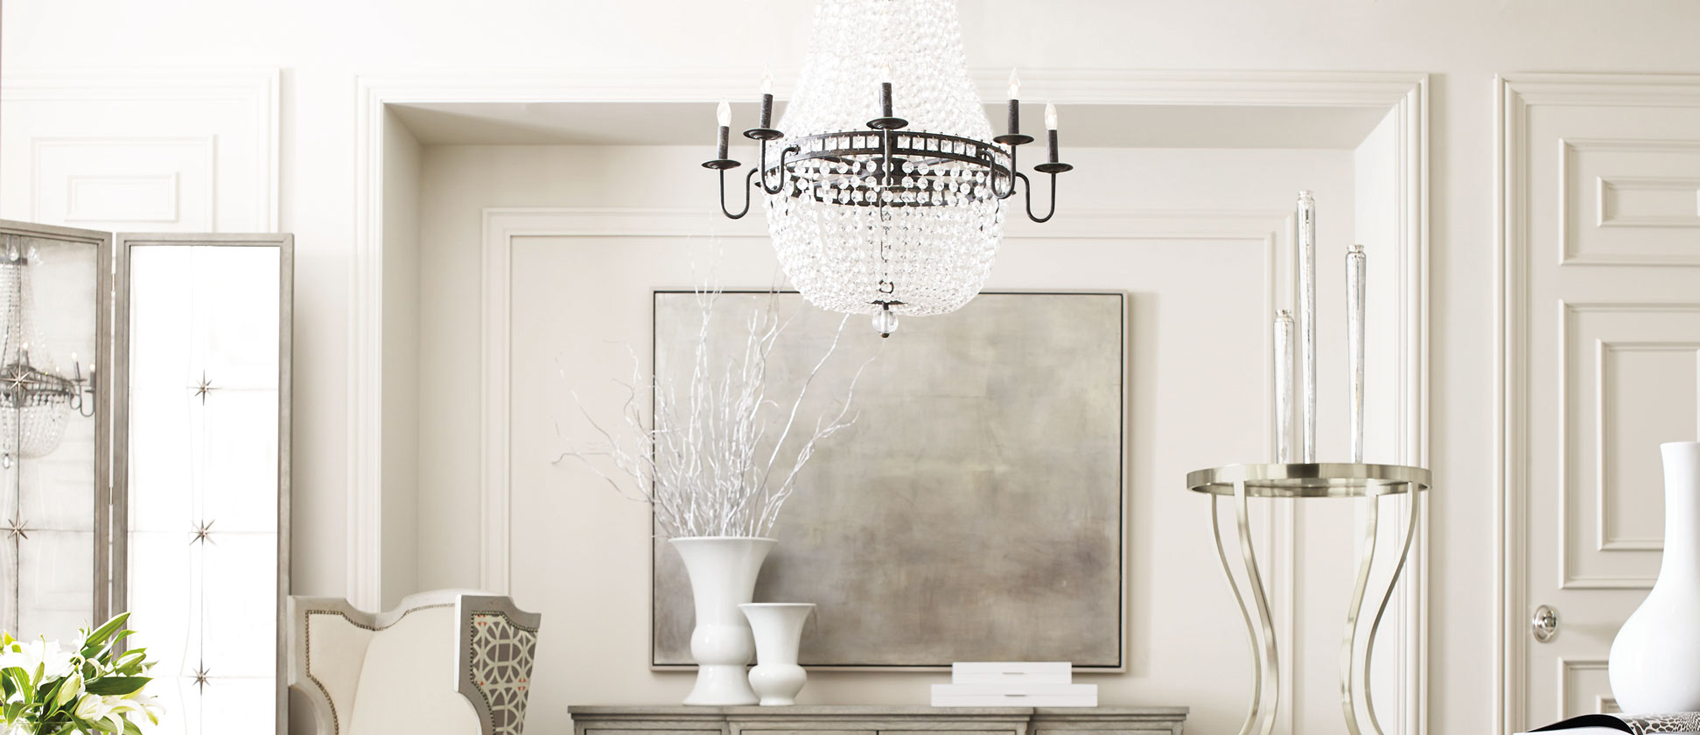 Chandeliers | Crystal, Glamorous, Modern | Buyer Select